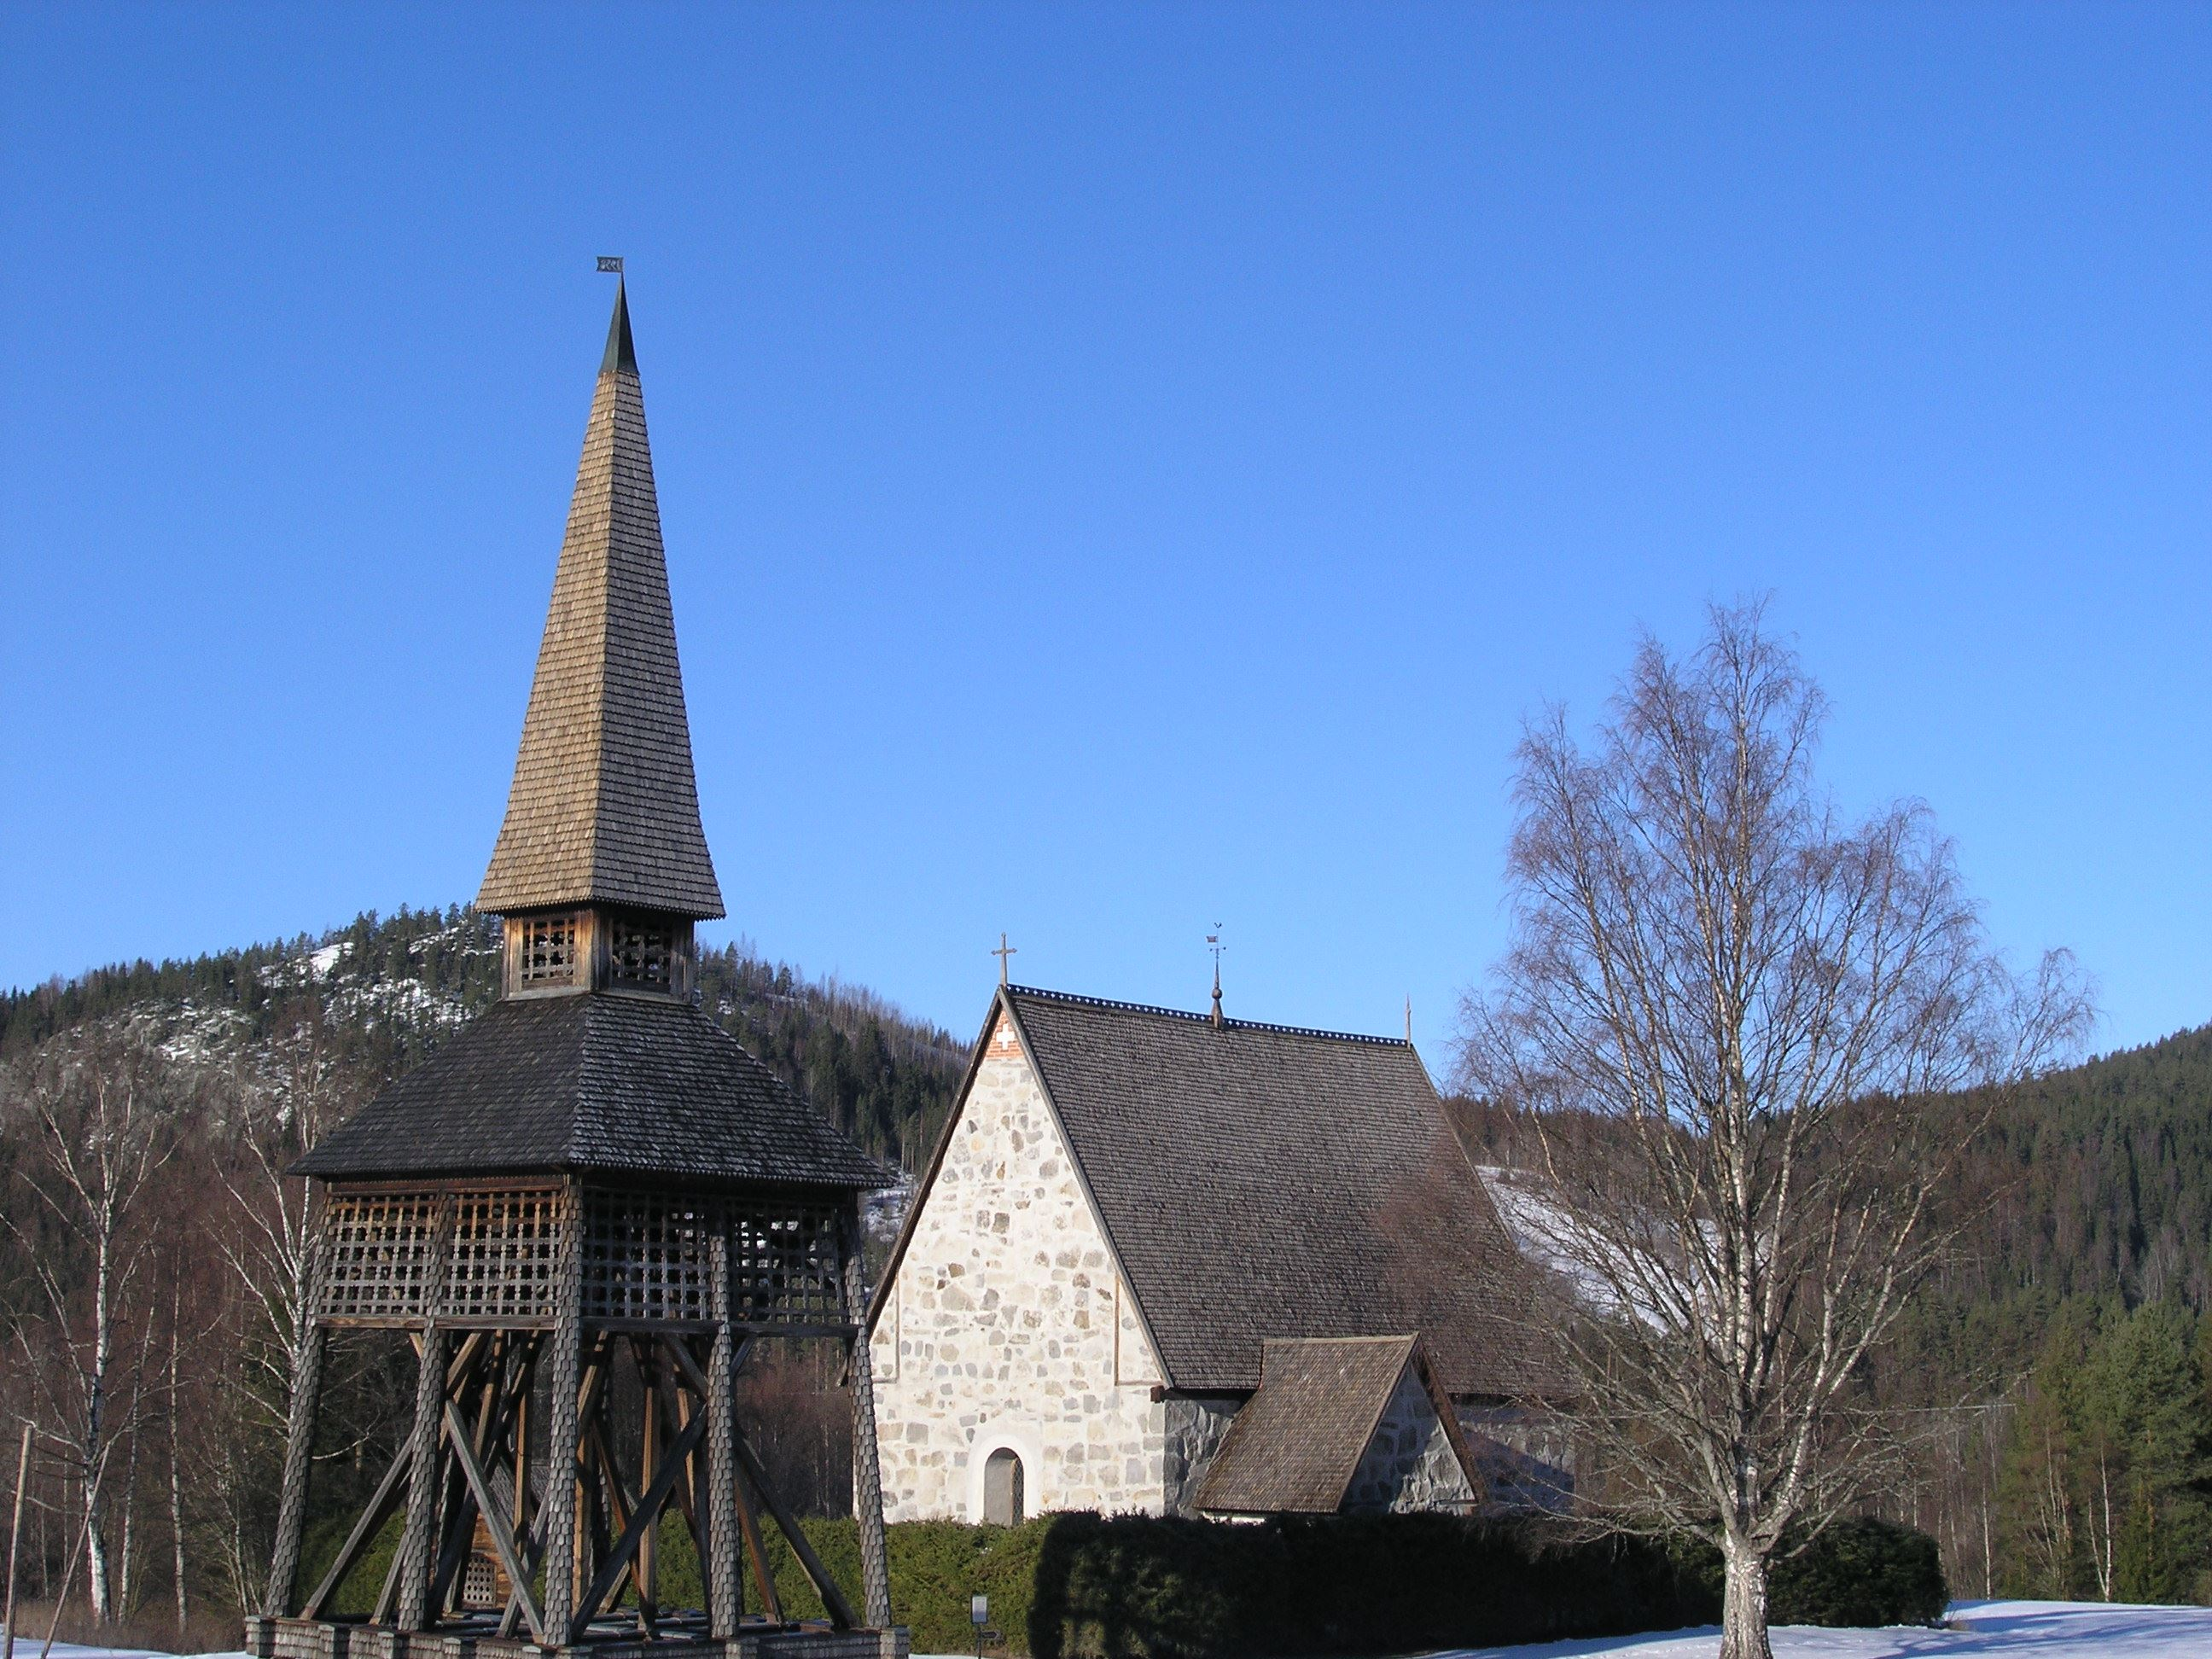 Jermunn Solem, The Old Church in Liden